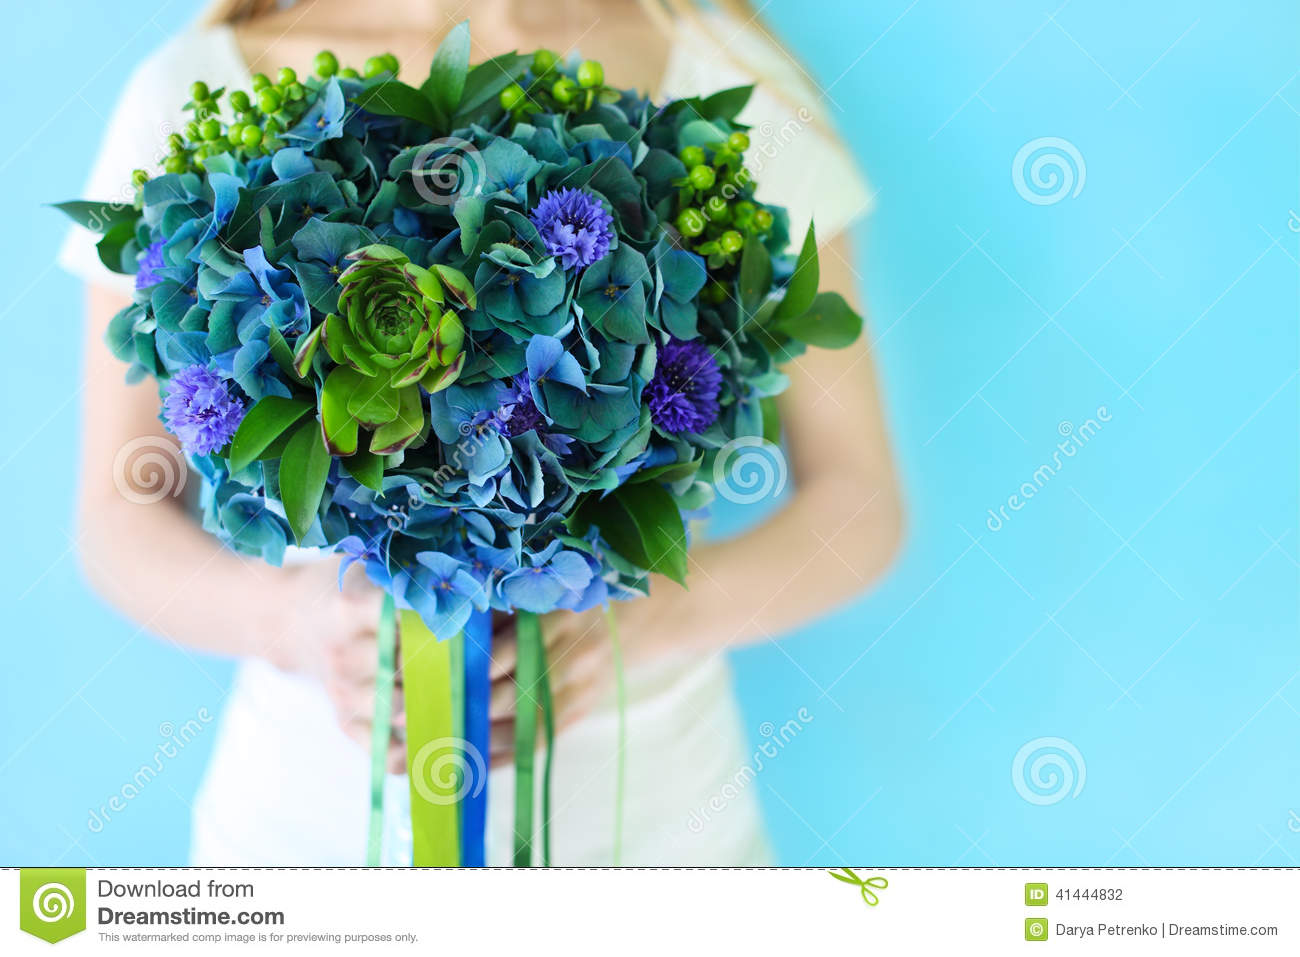 a wedding bouquet with hydrangea in blue and green colors